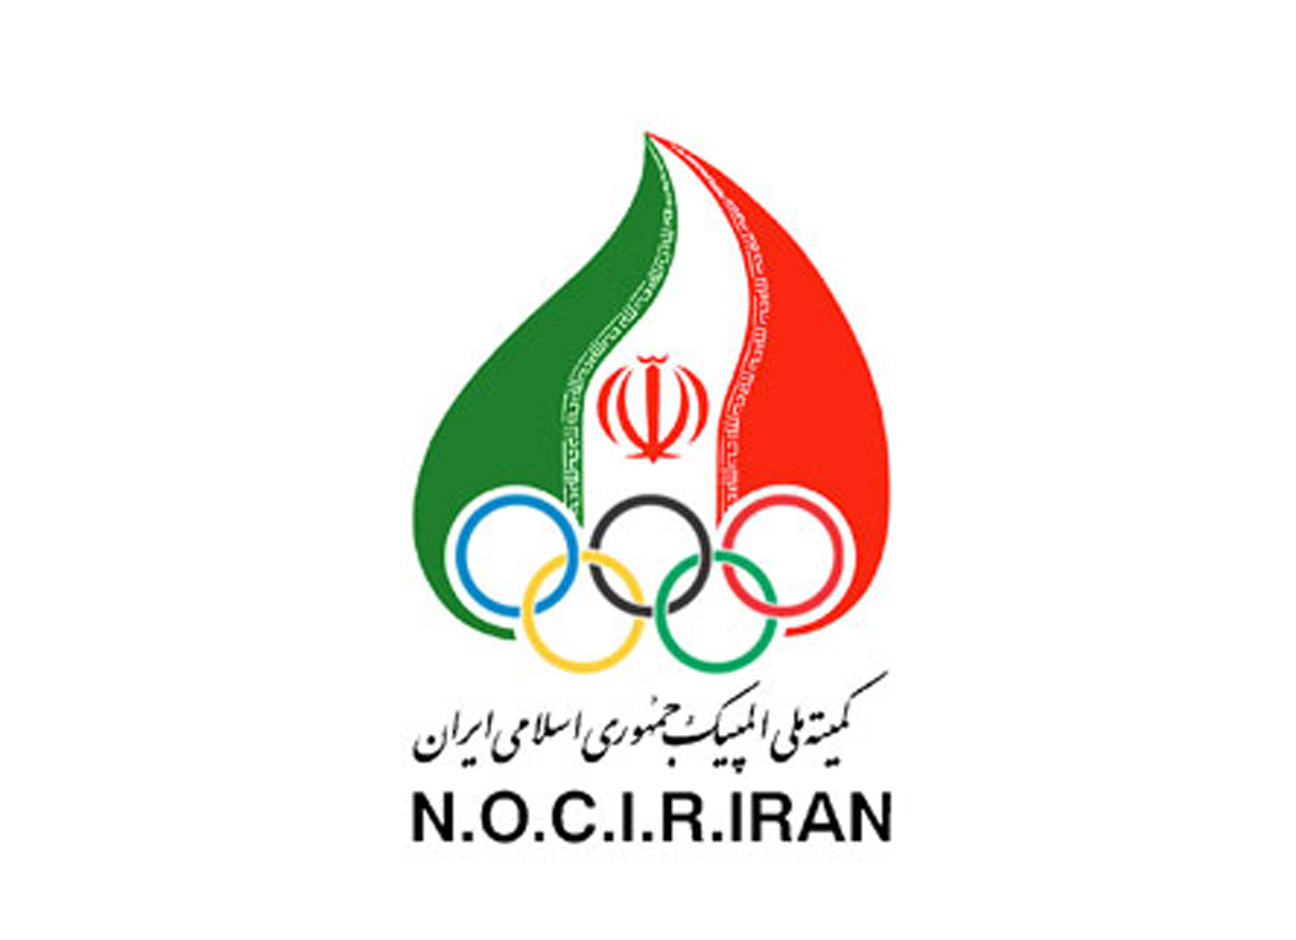 2019 Fajr Cup in Tehran - Weightlifting Olympic Qualification